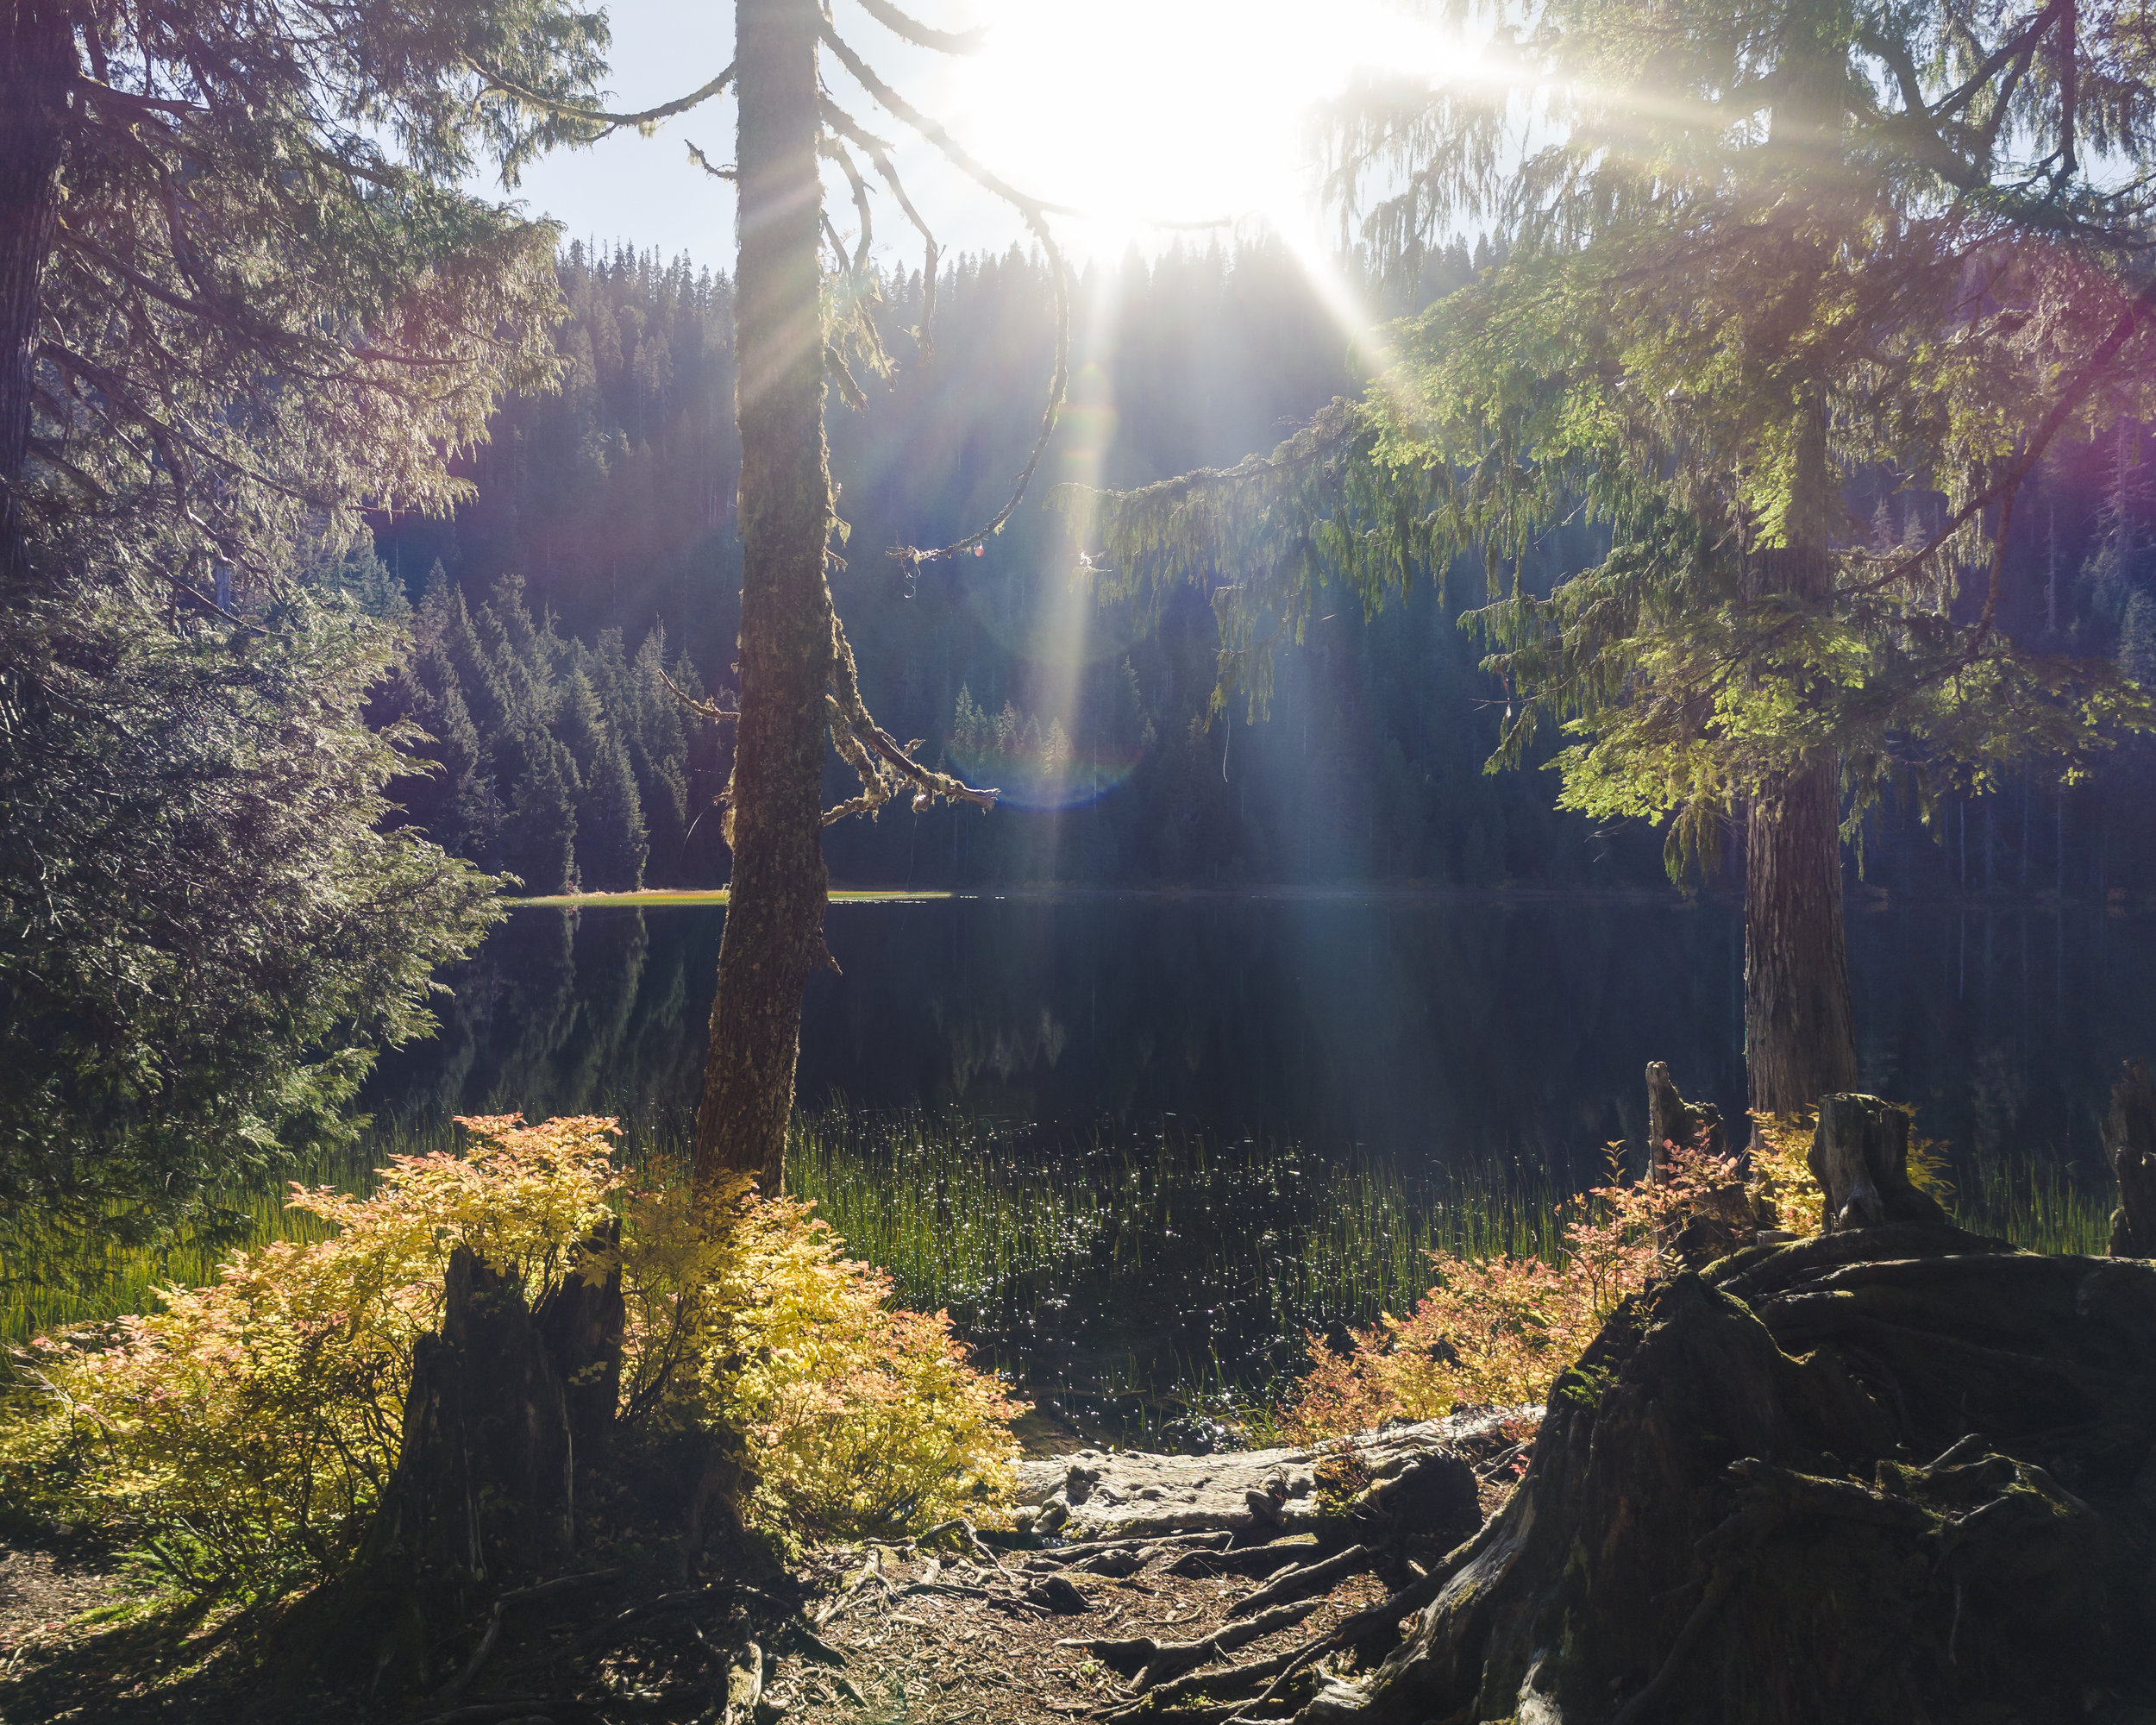 Nature_Fall_Season_Background_of_Lake_with_Colorful_Sun_Lens_Flare.jpg